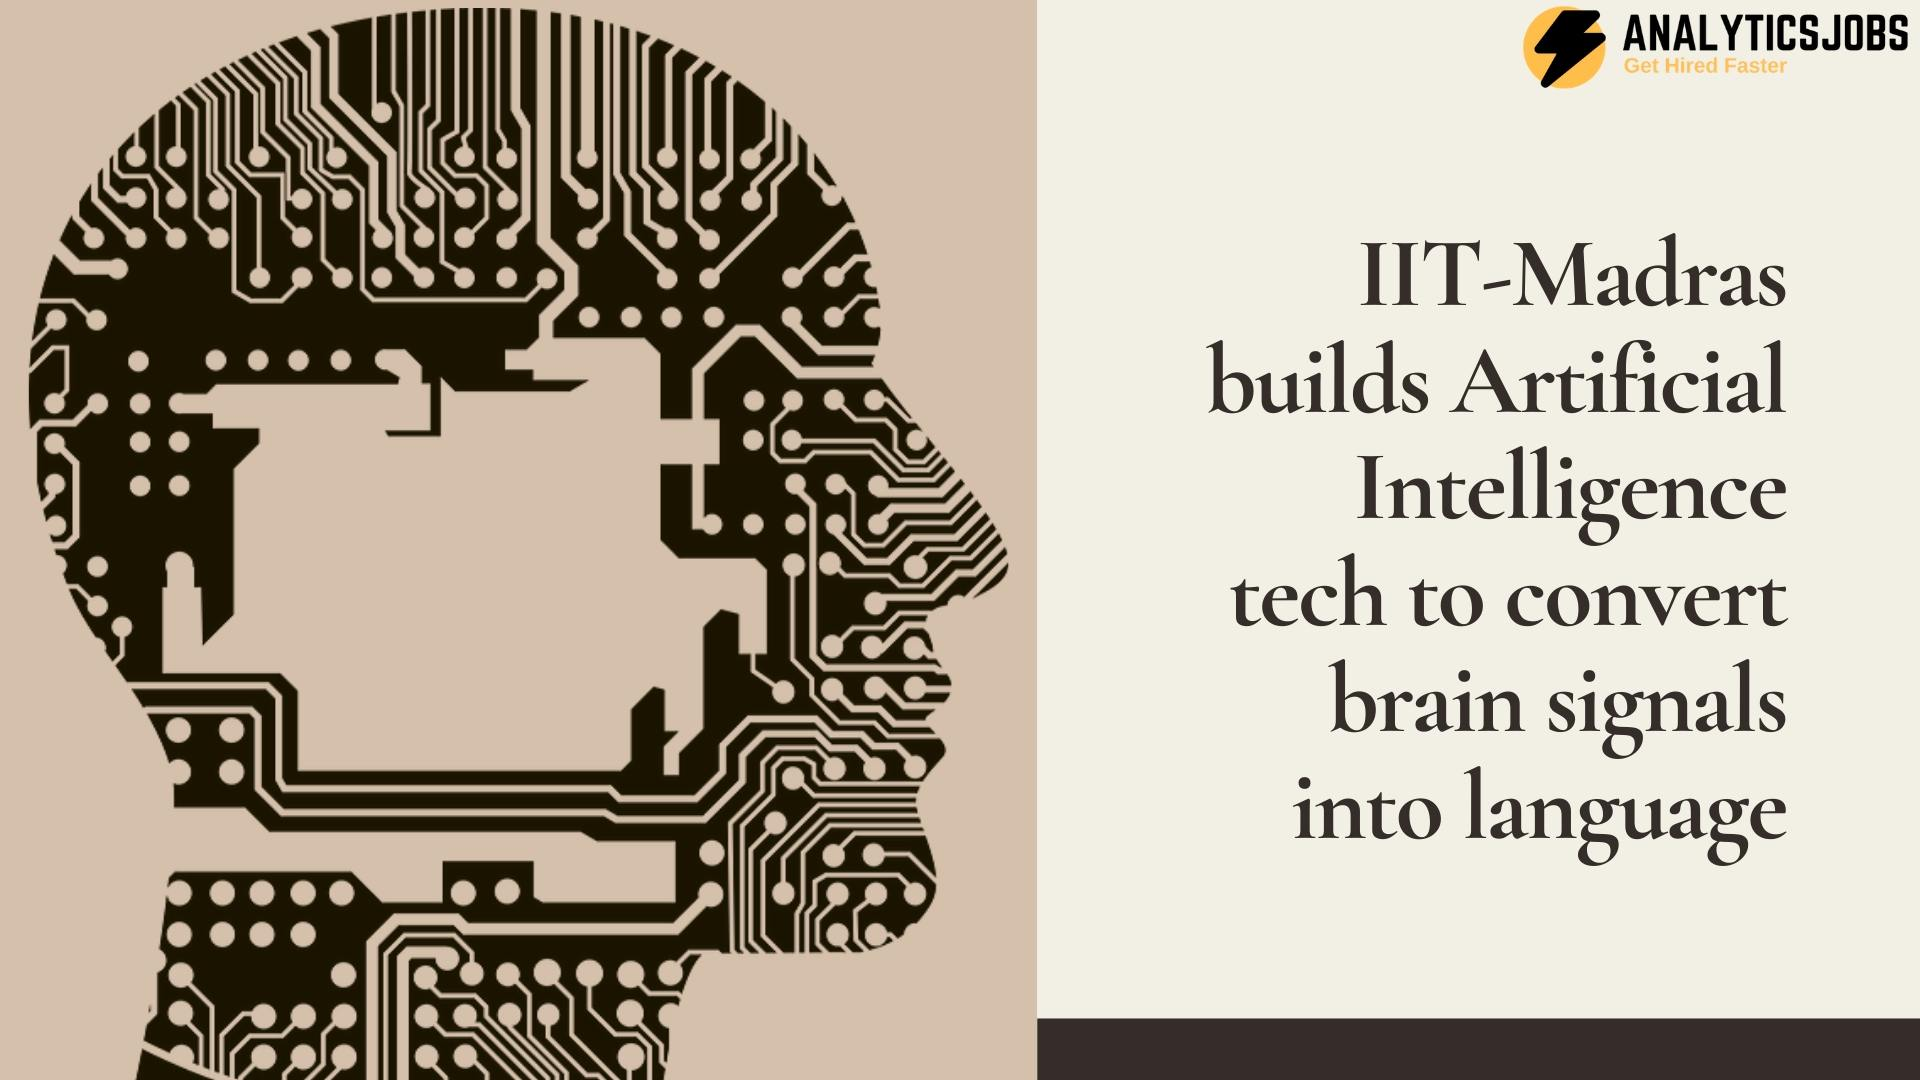 IIT-M converts brain signal into language with this new AI technology